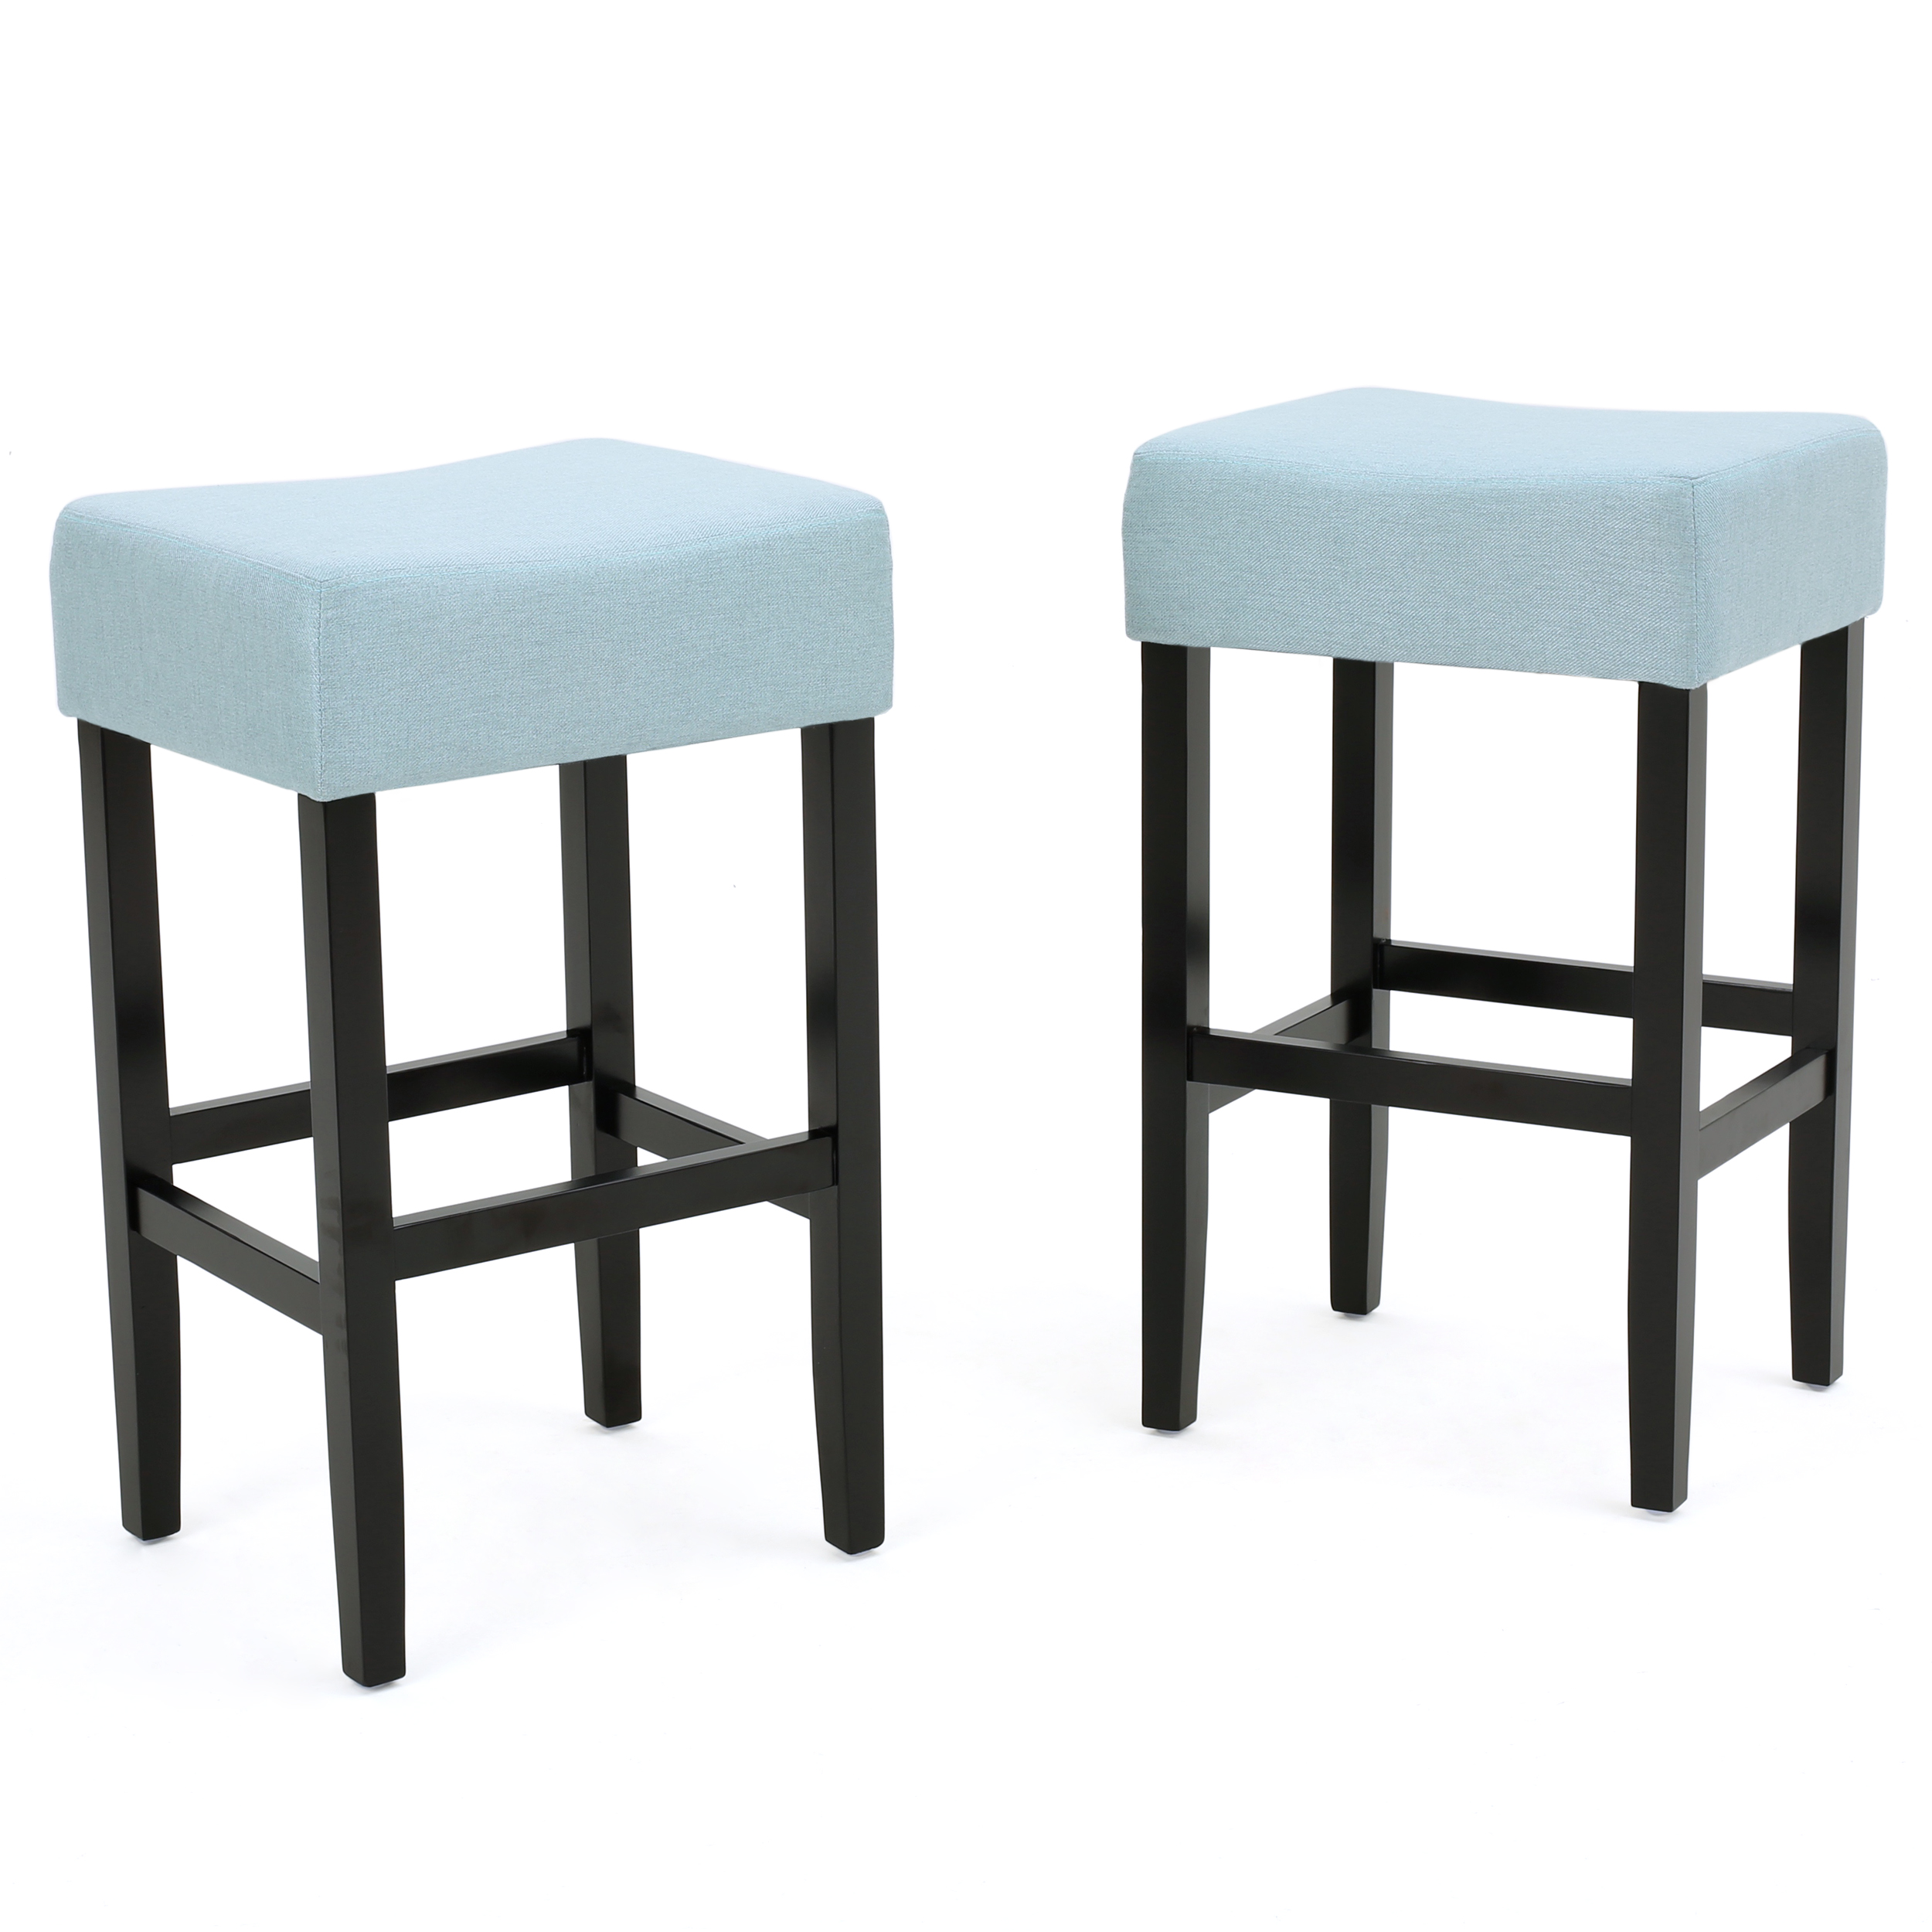 Awesome Lenando Fabric Backless Counter Stool Set Of 2 Light Blue Pabps2019 Chair Design Images Pabps2019Com